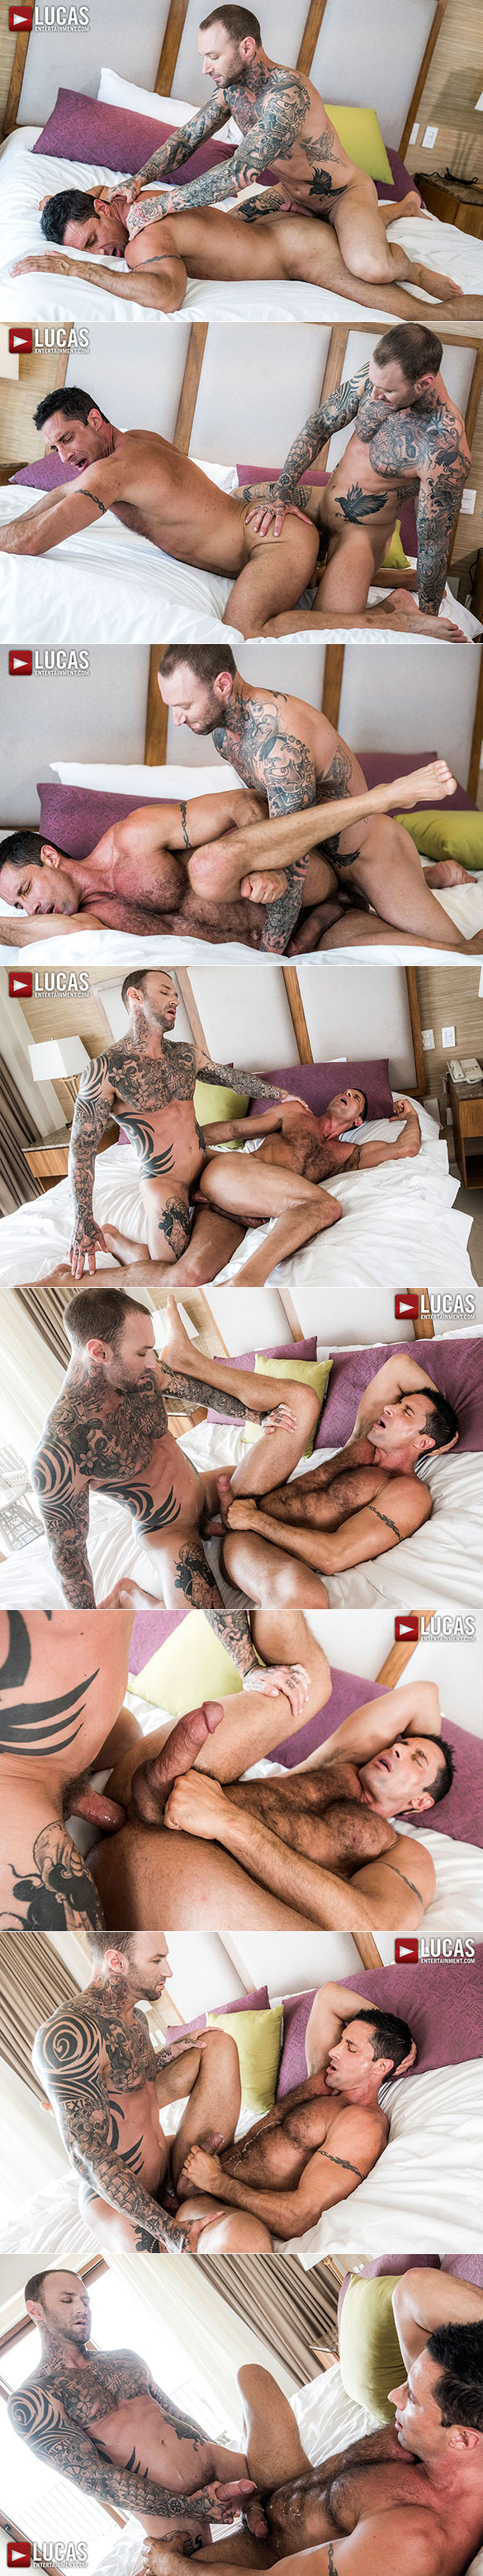 """Lucas Entertainment: Dylan James bangs muscle daddy Nick Capra in """"Bareback Auditions 10: Raw Dogged"""""""